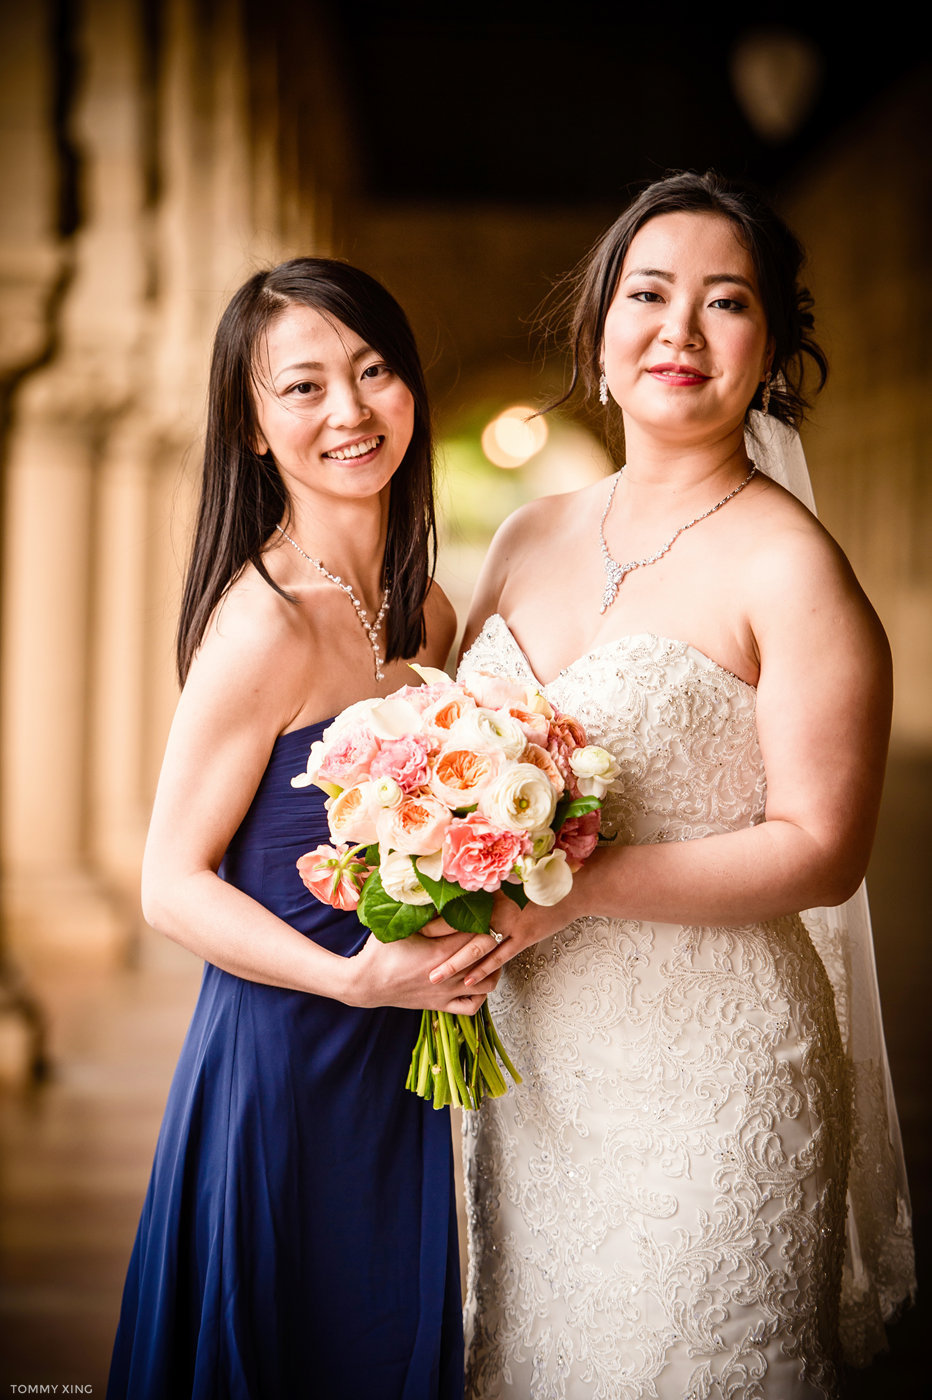 STANFORD MEMORIAL CHURCH WEDDING - Wenjie & Chengcheng - SAN FRANCISCO BAY AREA 斯坦福教堂婚礼跟拍 - 洛杉矶婚礼婚纱照摄影师 Tommy Xing Photography144.jpg